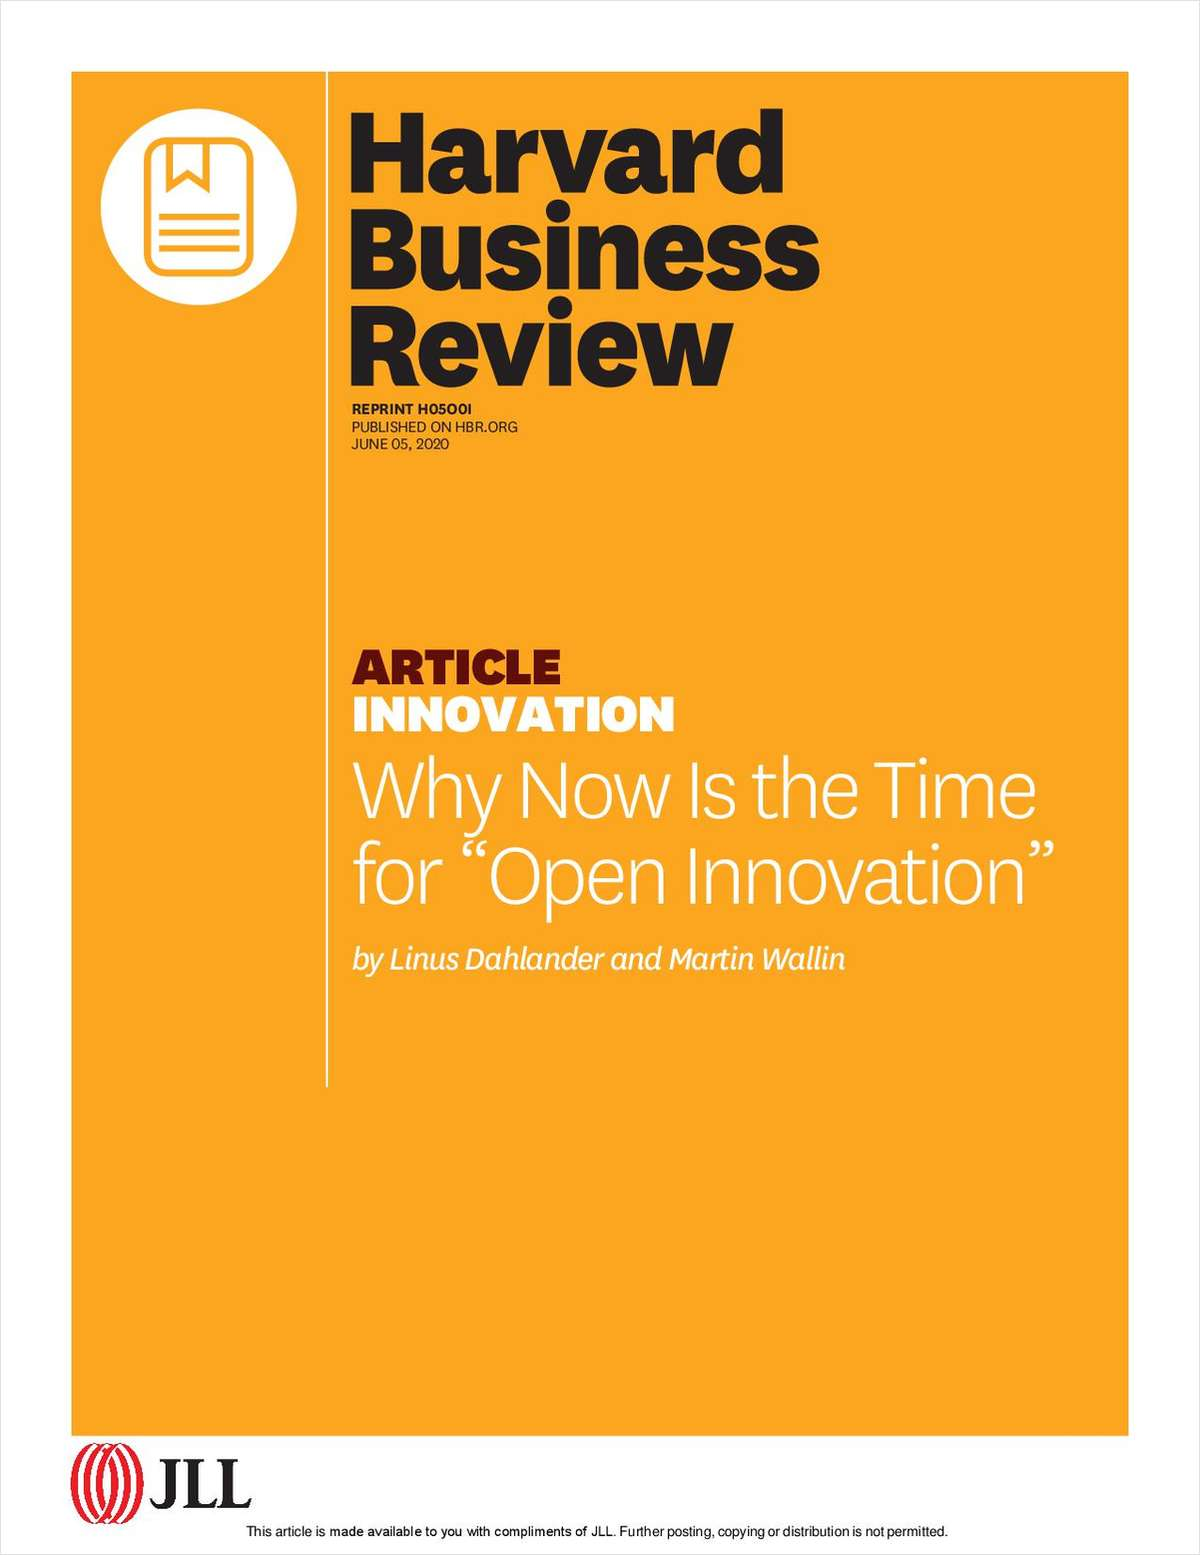 Why Now Is the Time for Open Innovation